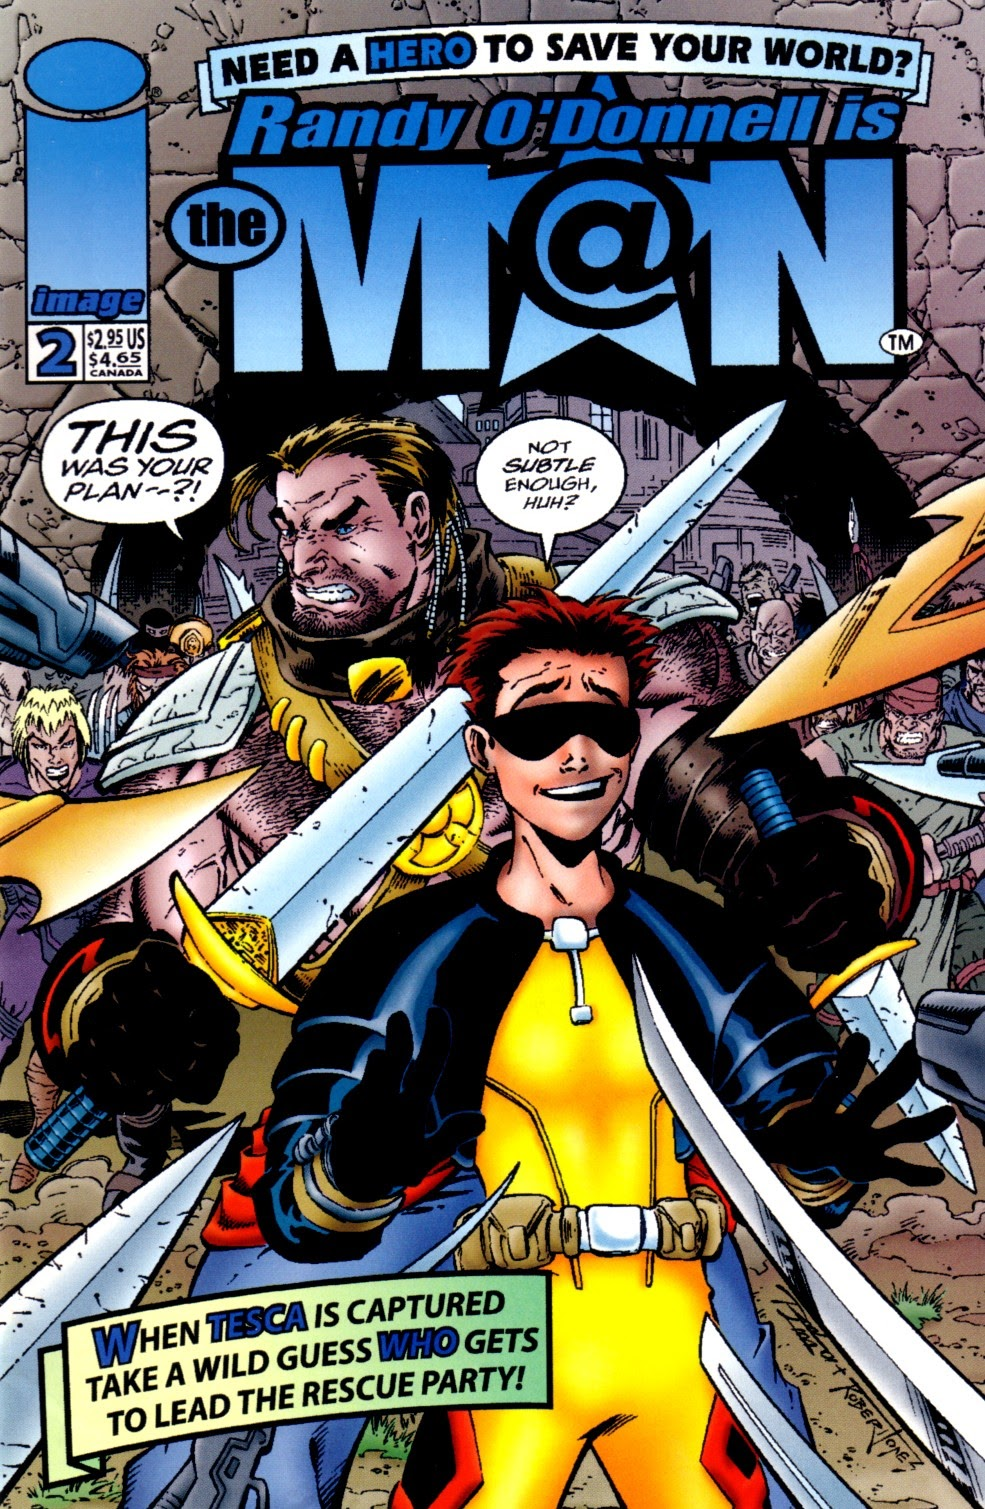 Read online Randy O'Donnell is The M@N comic -  Issue #2 - 1